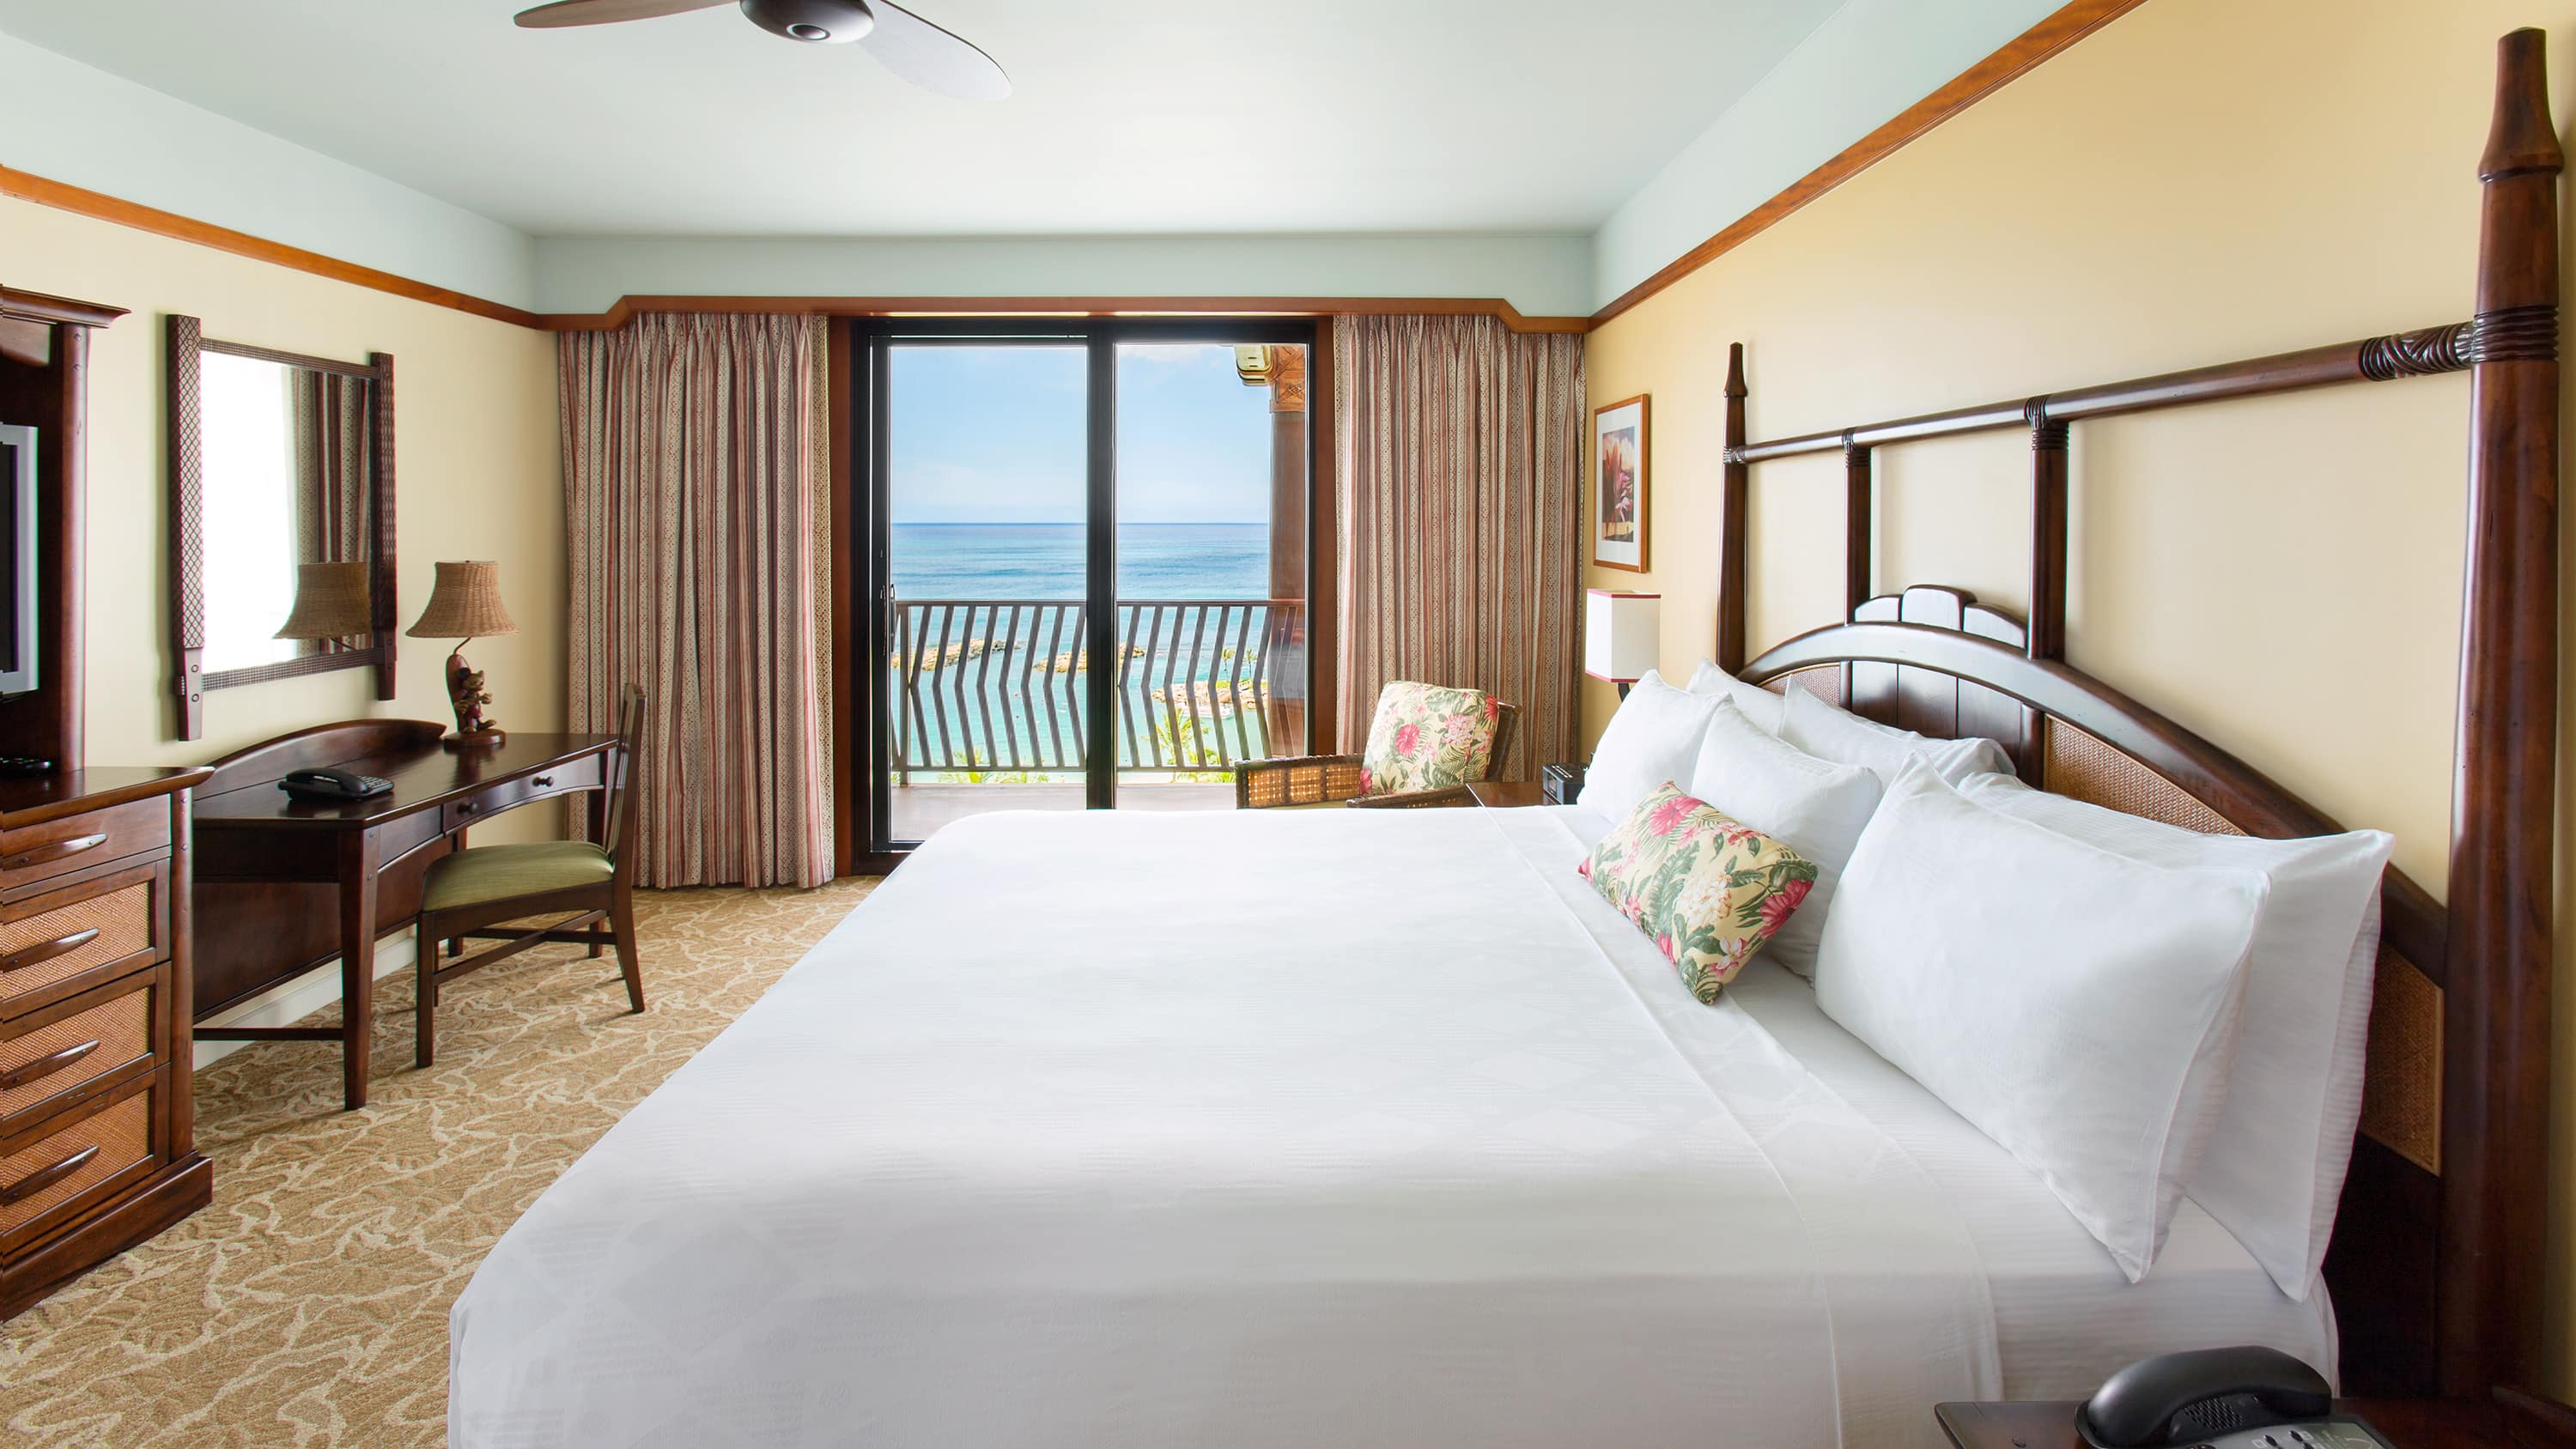 Two queen beds opposite a dresser with flat-panel TV and a table for 2, with an ocean view balcony beyond